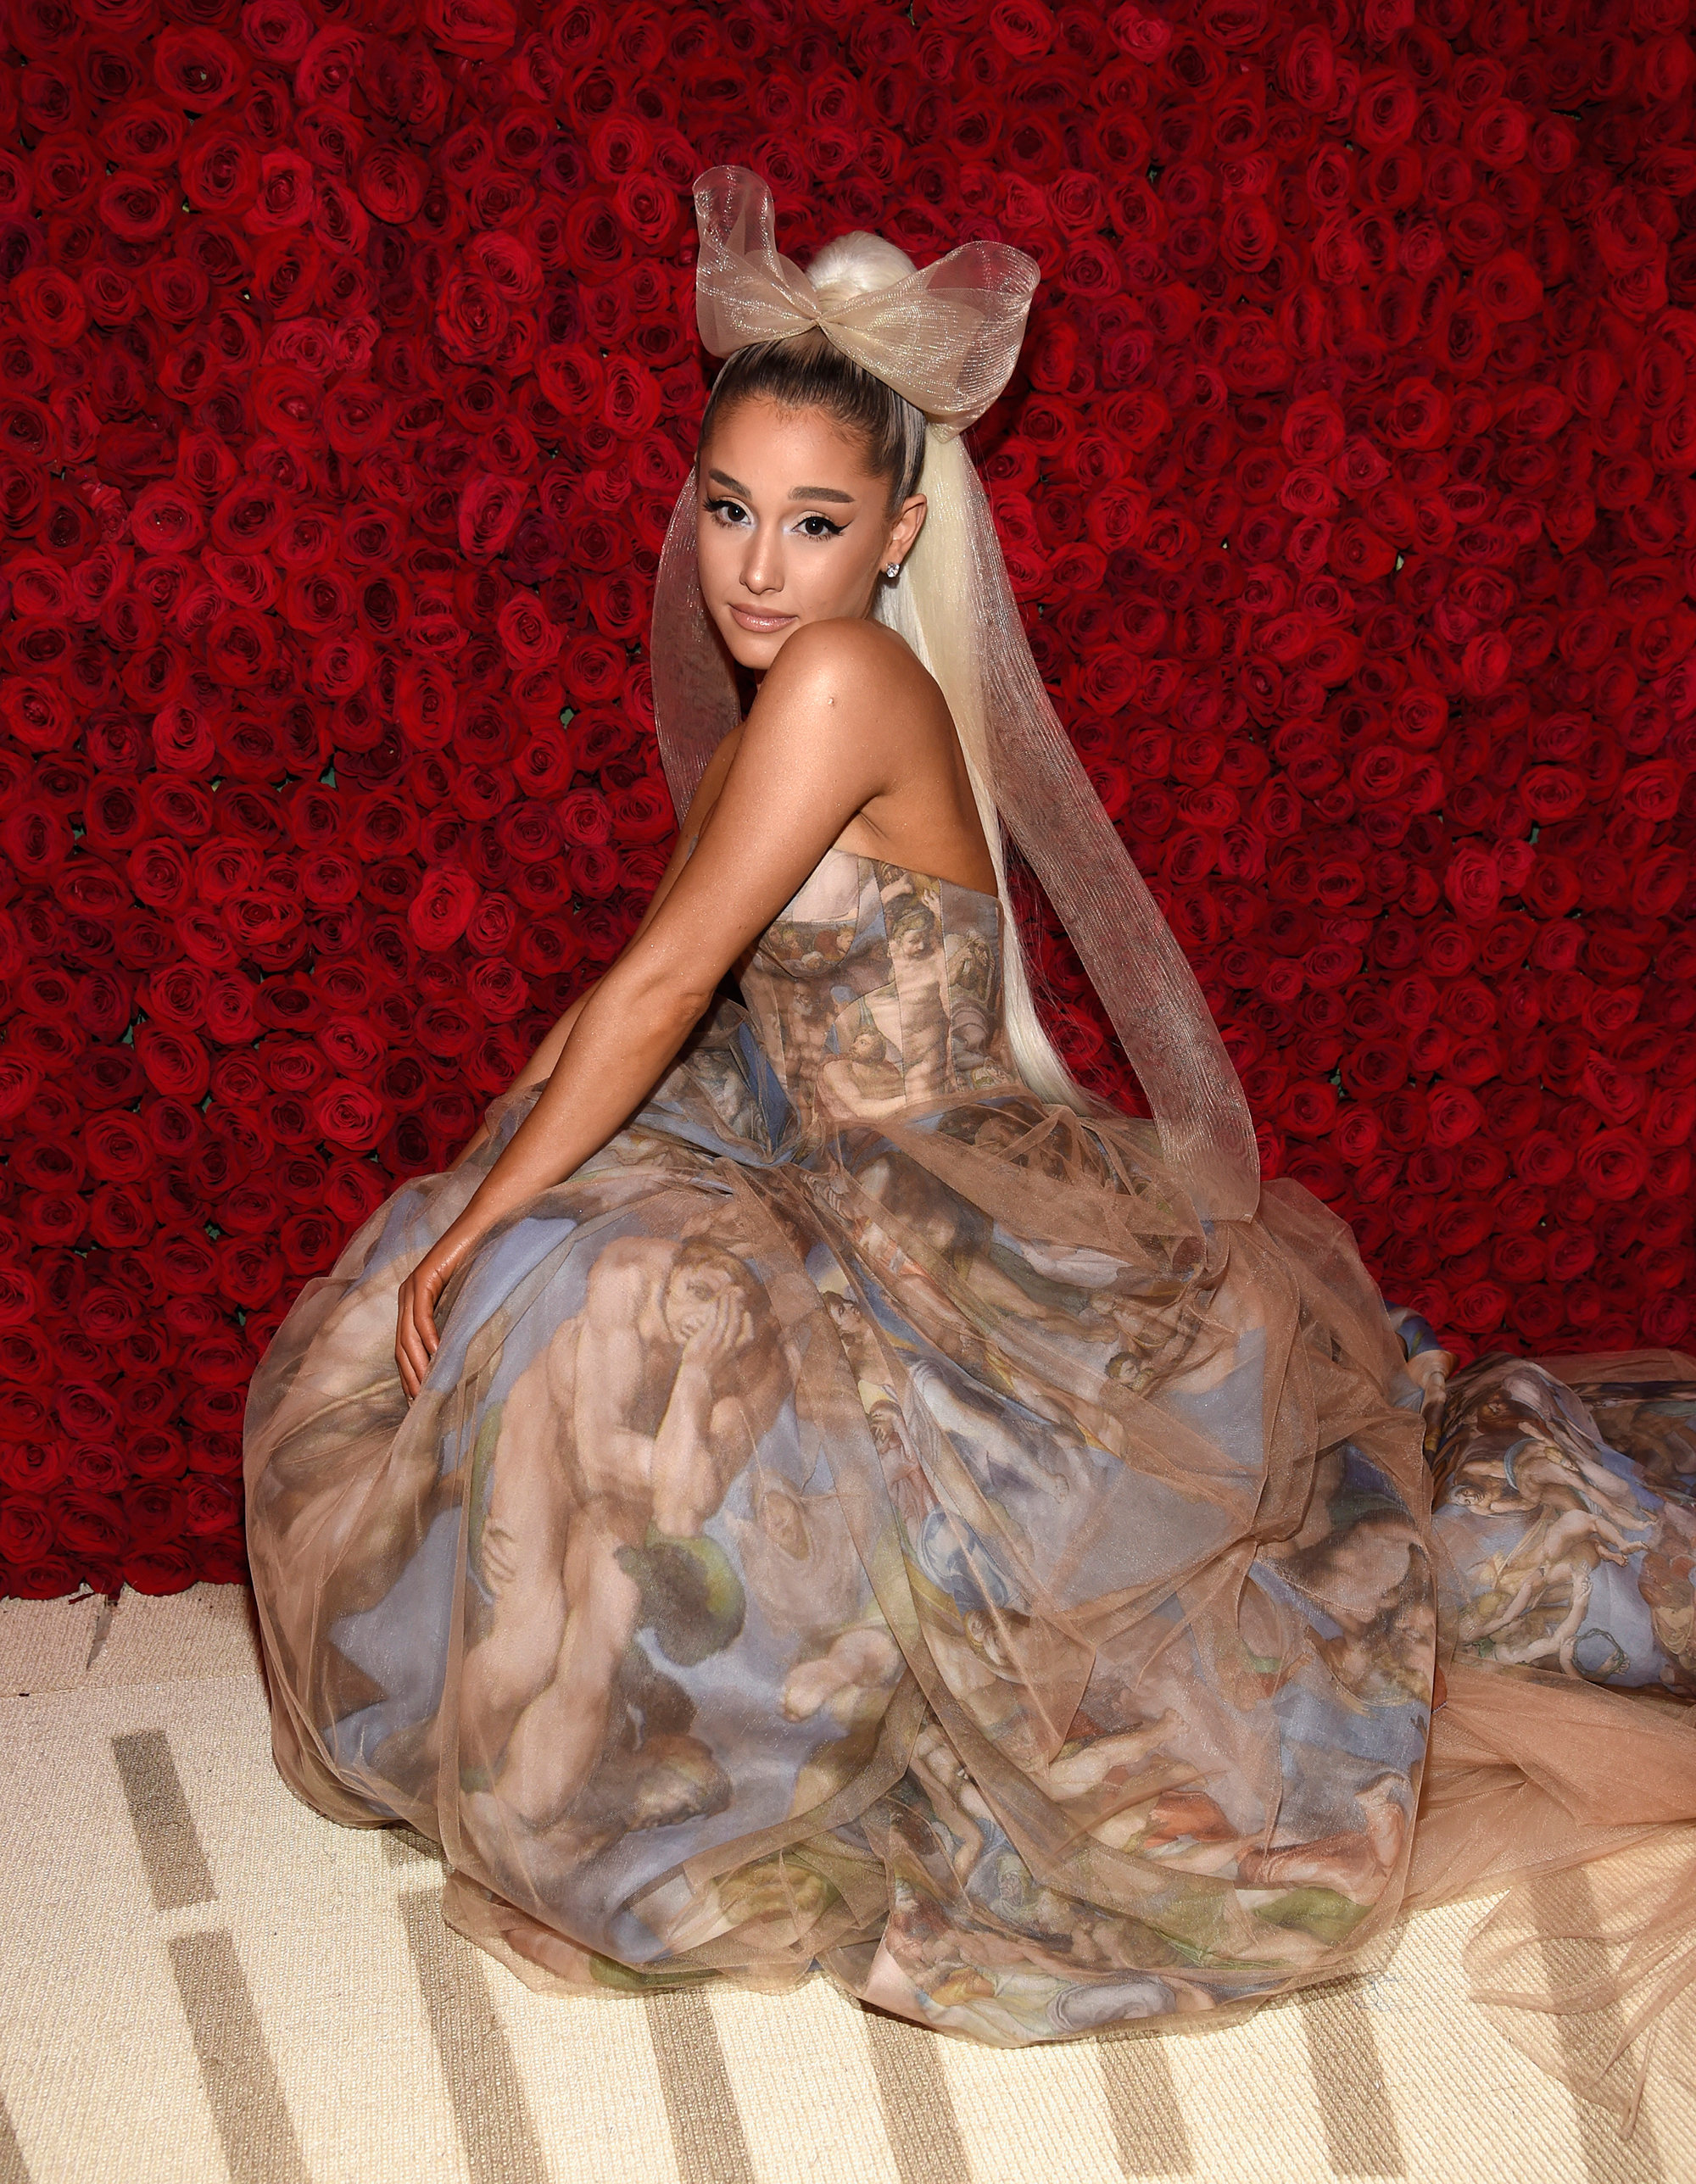 Ariana Grande's Dating History: A Timeline of Her Exes, Flings